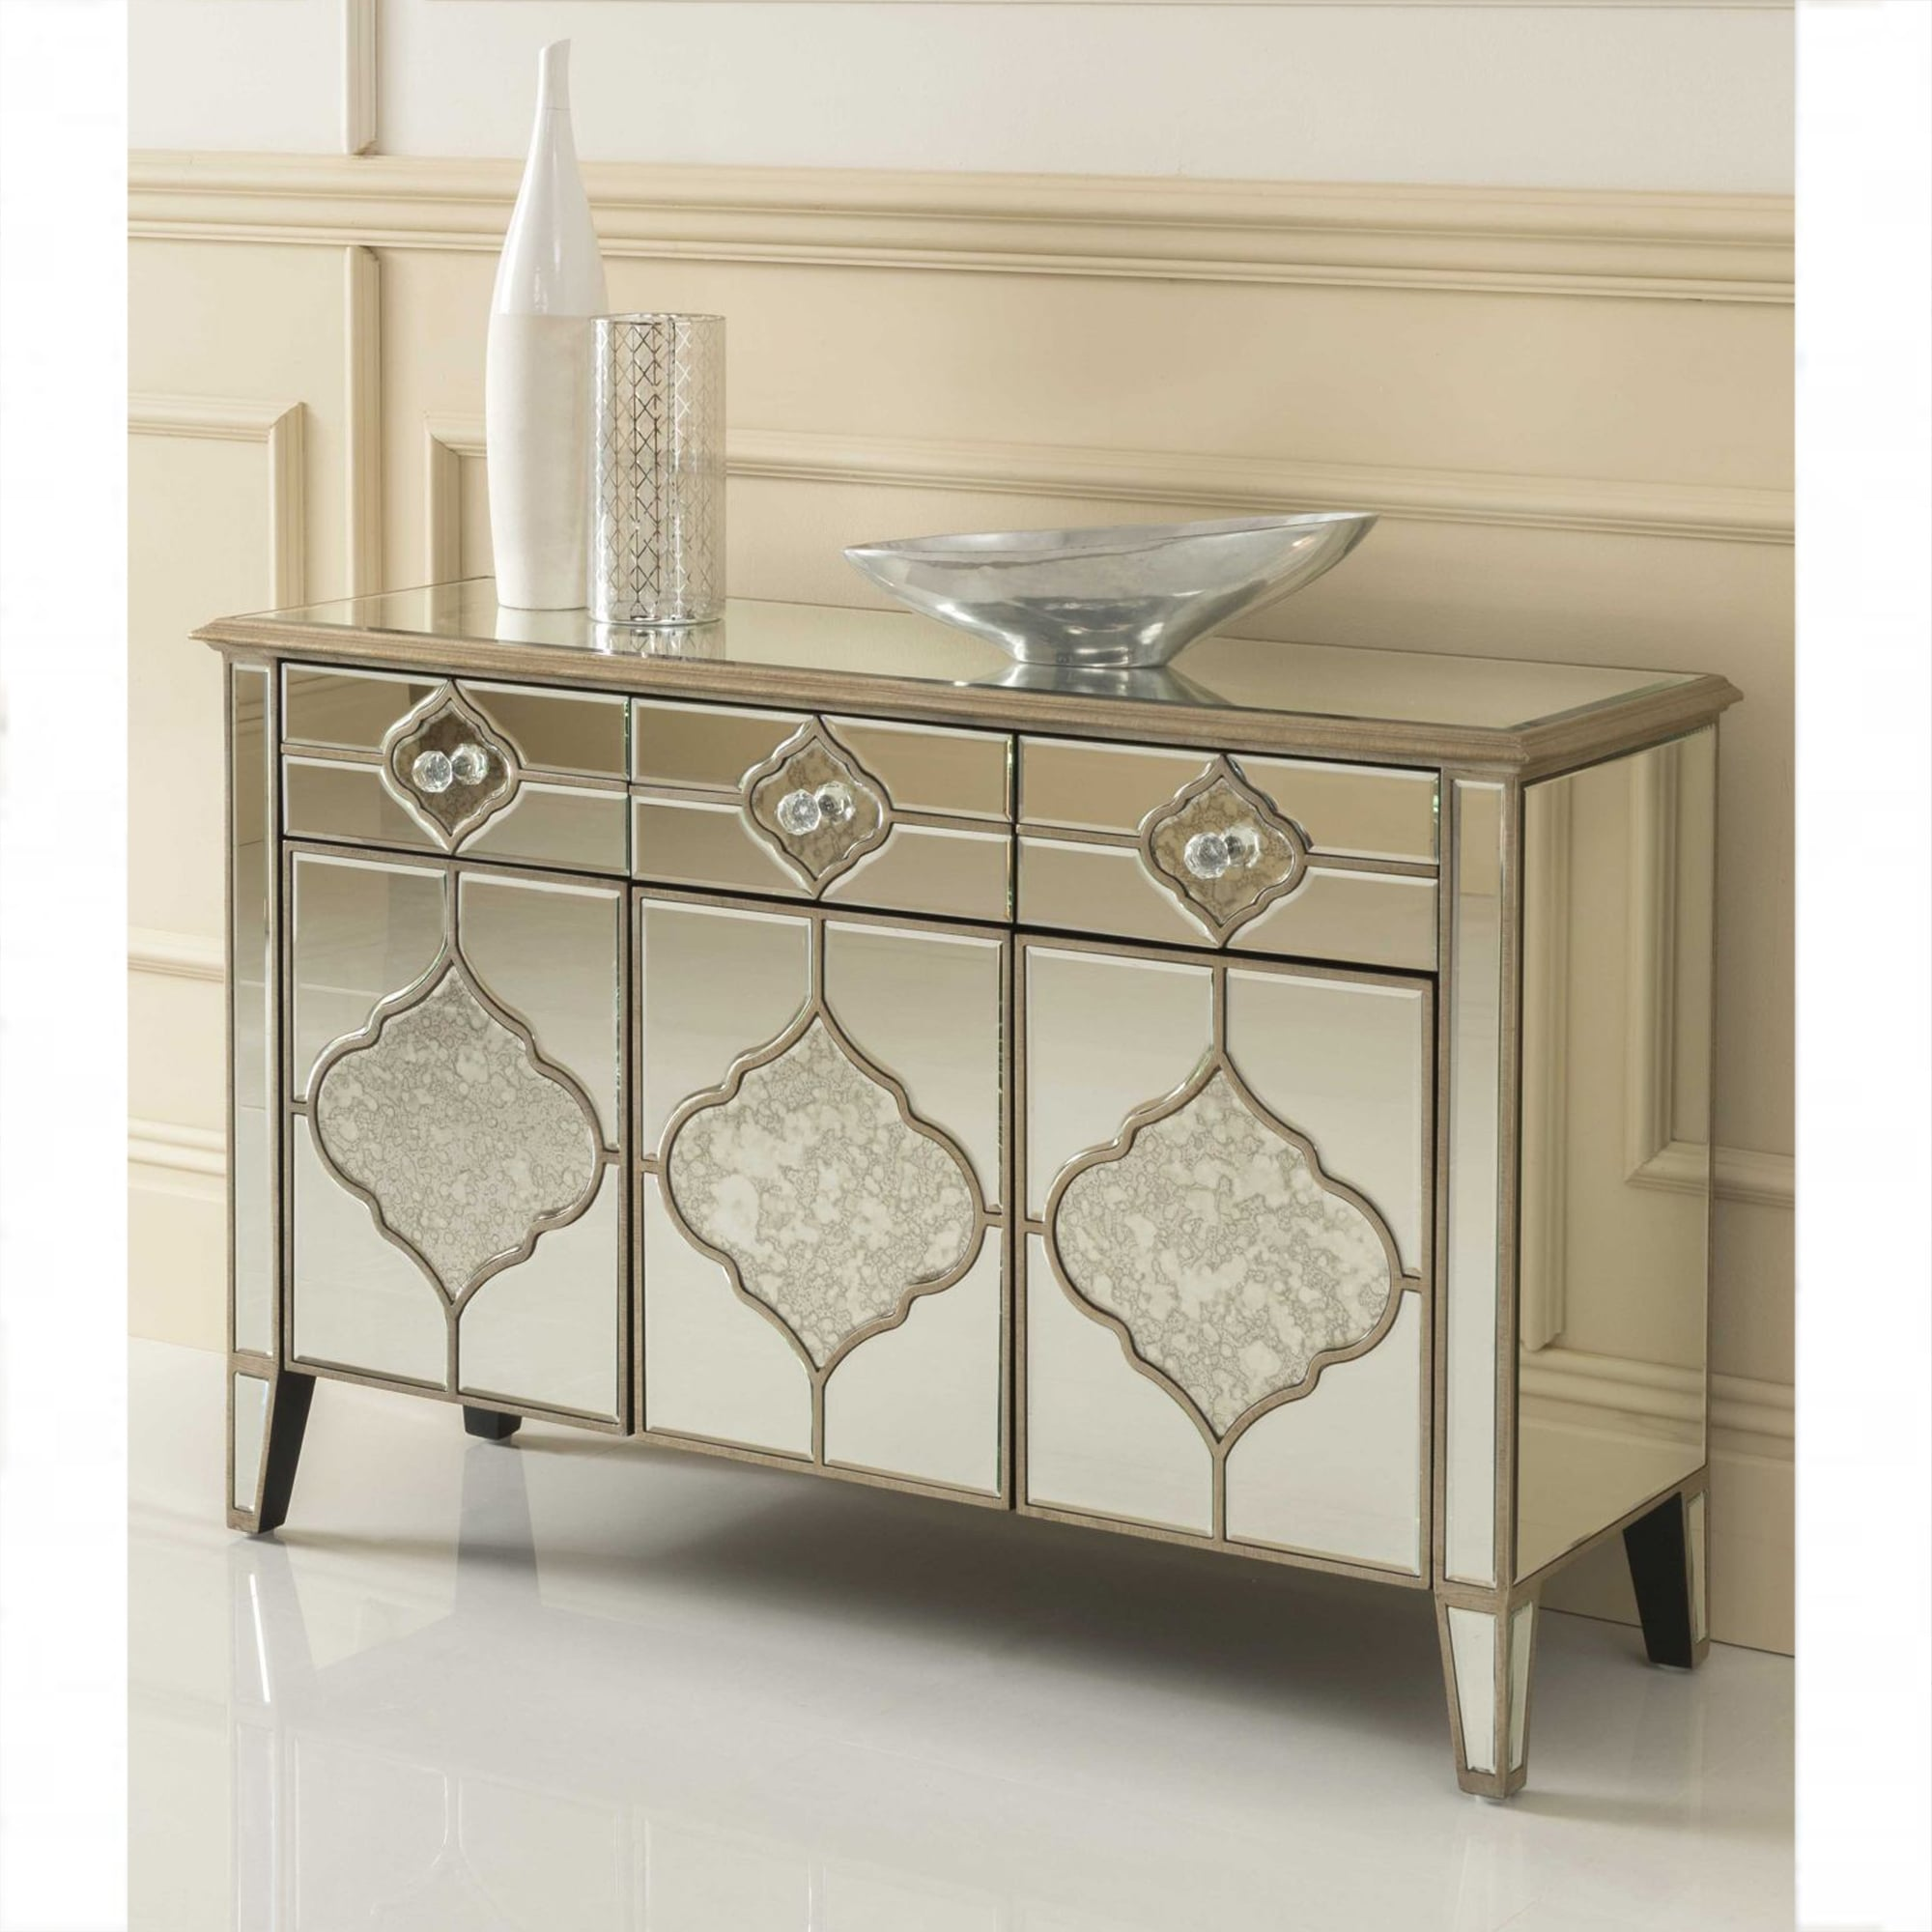 Sassari Mirrored Sideboard Venetian Glass Furniture